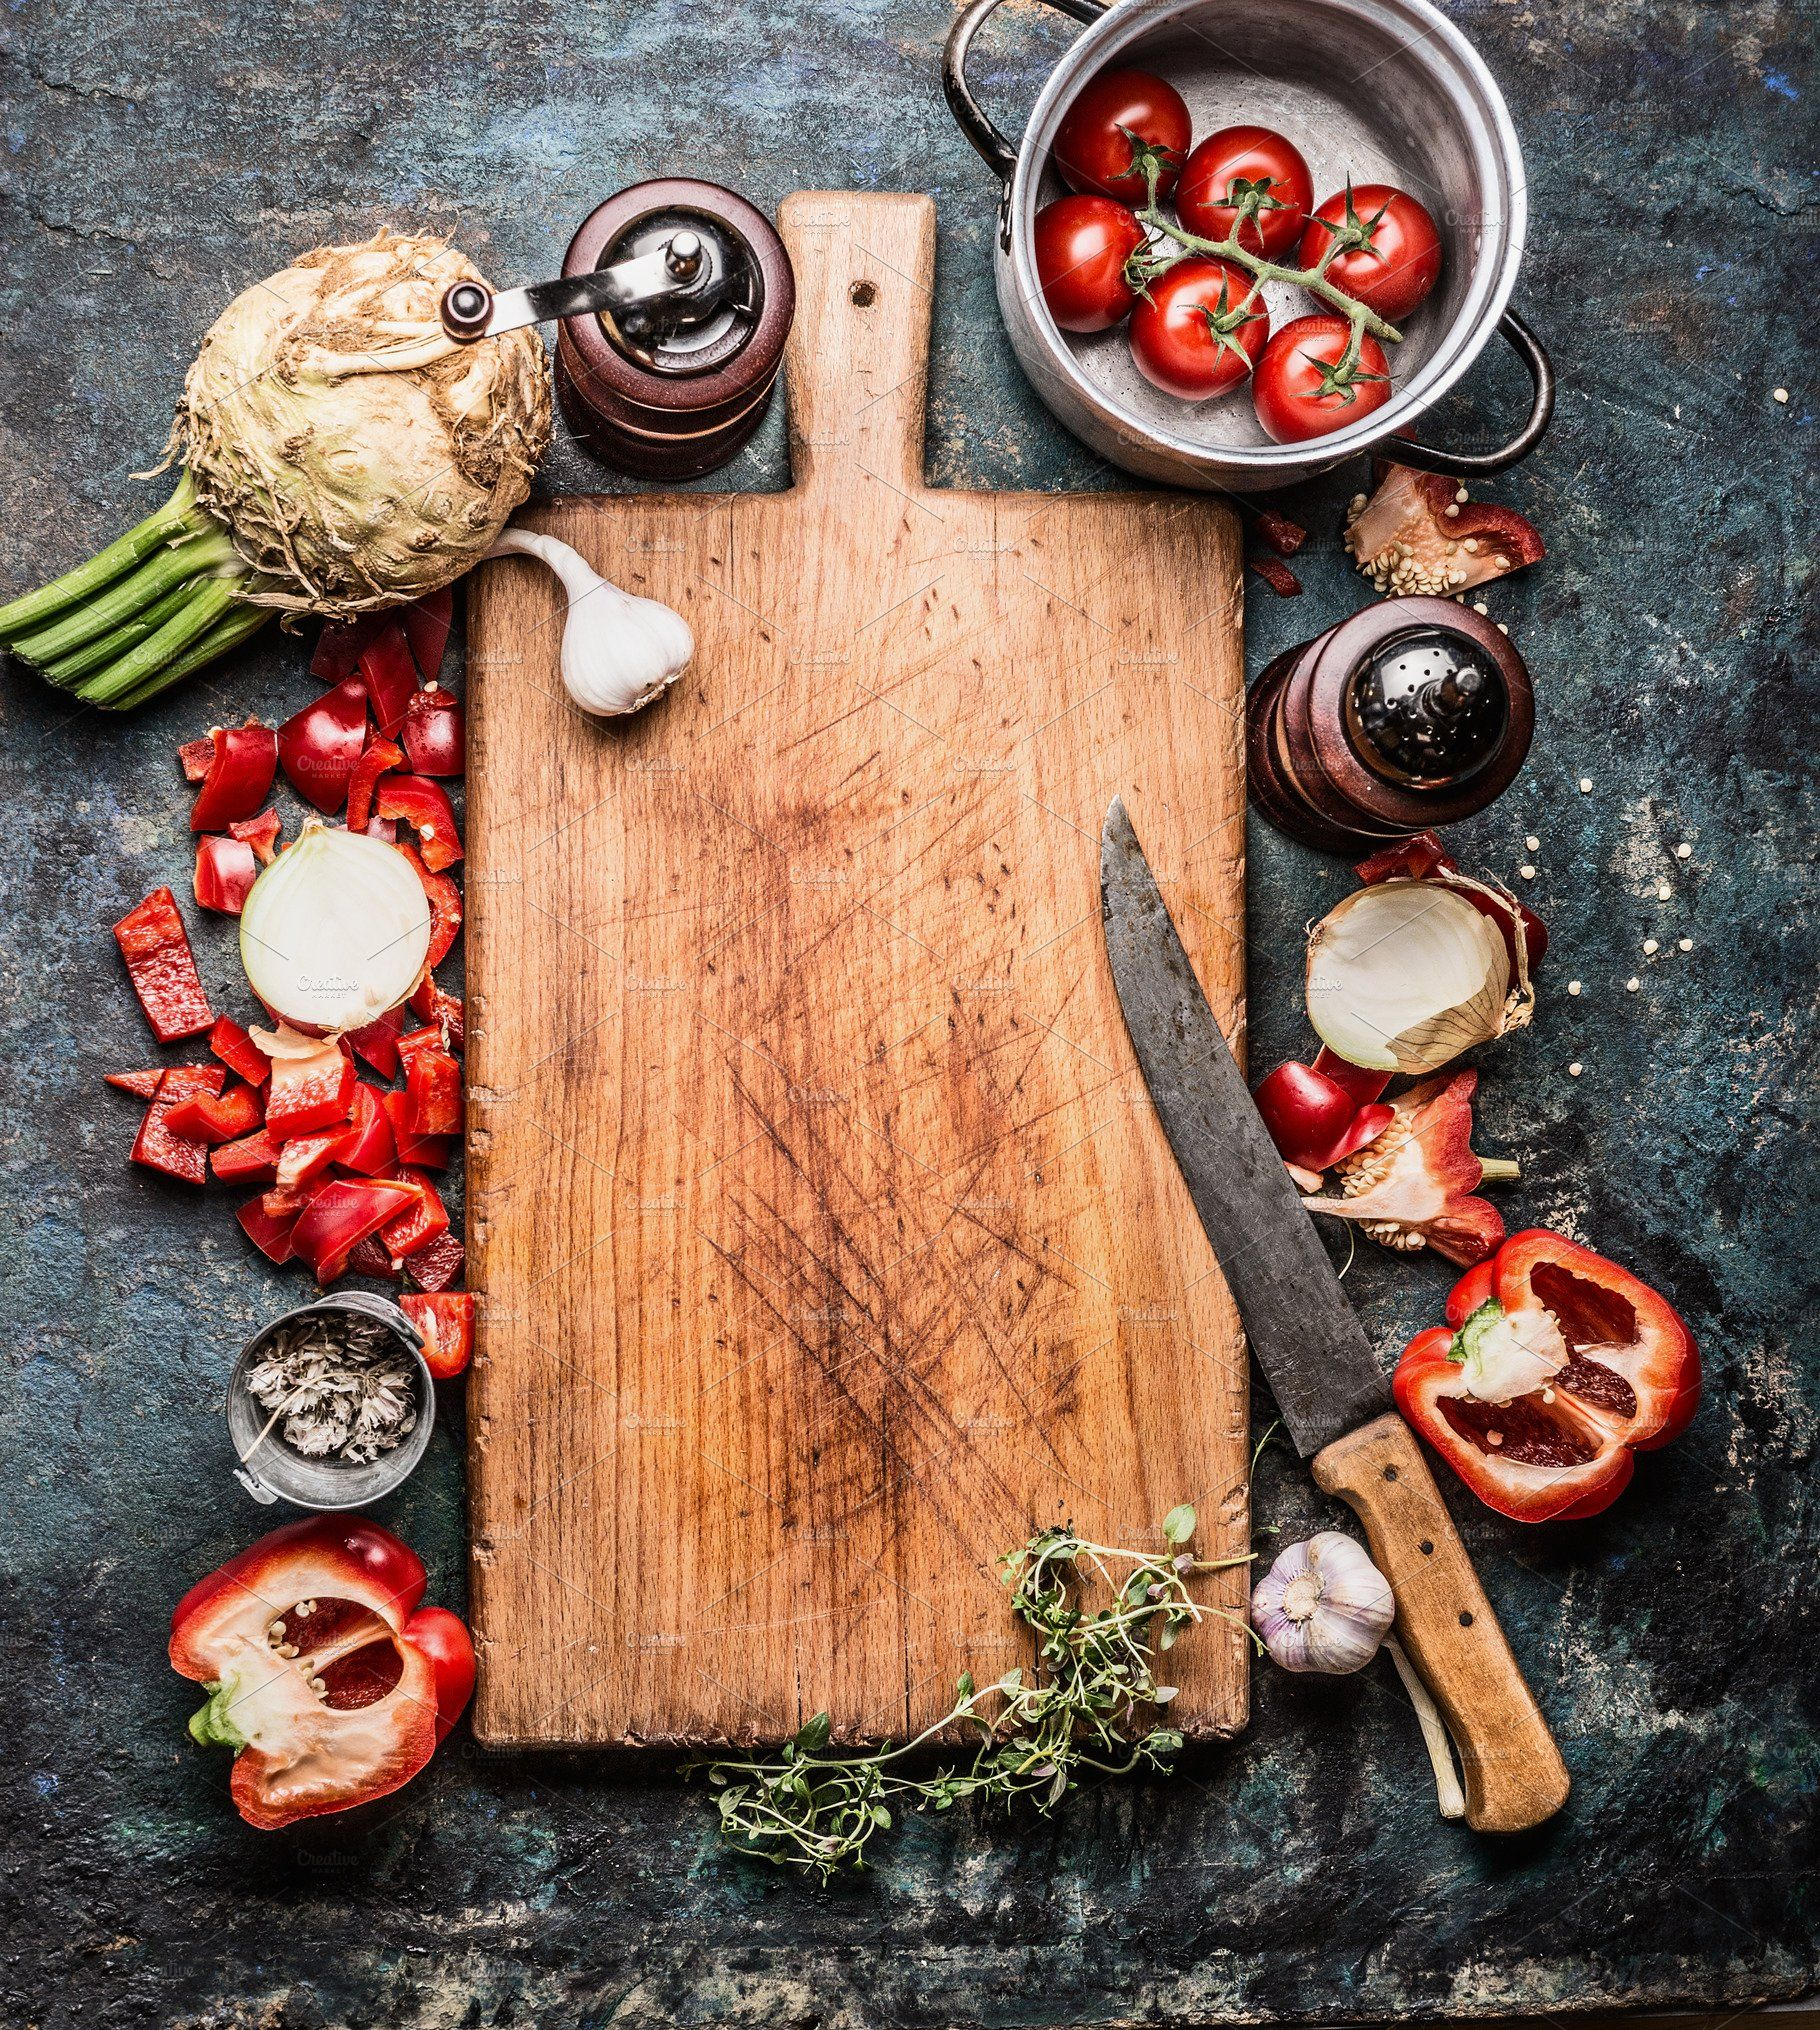 Pin On Food Background Wallpapers